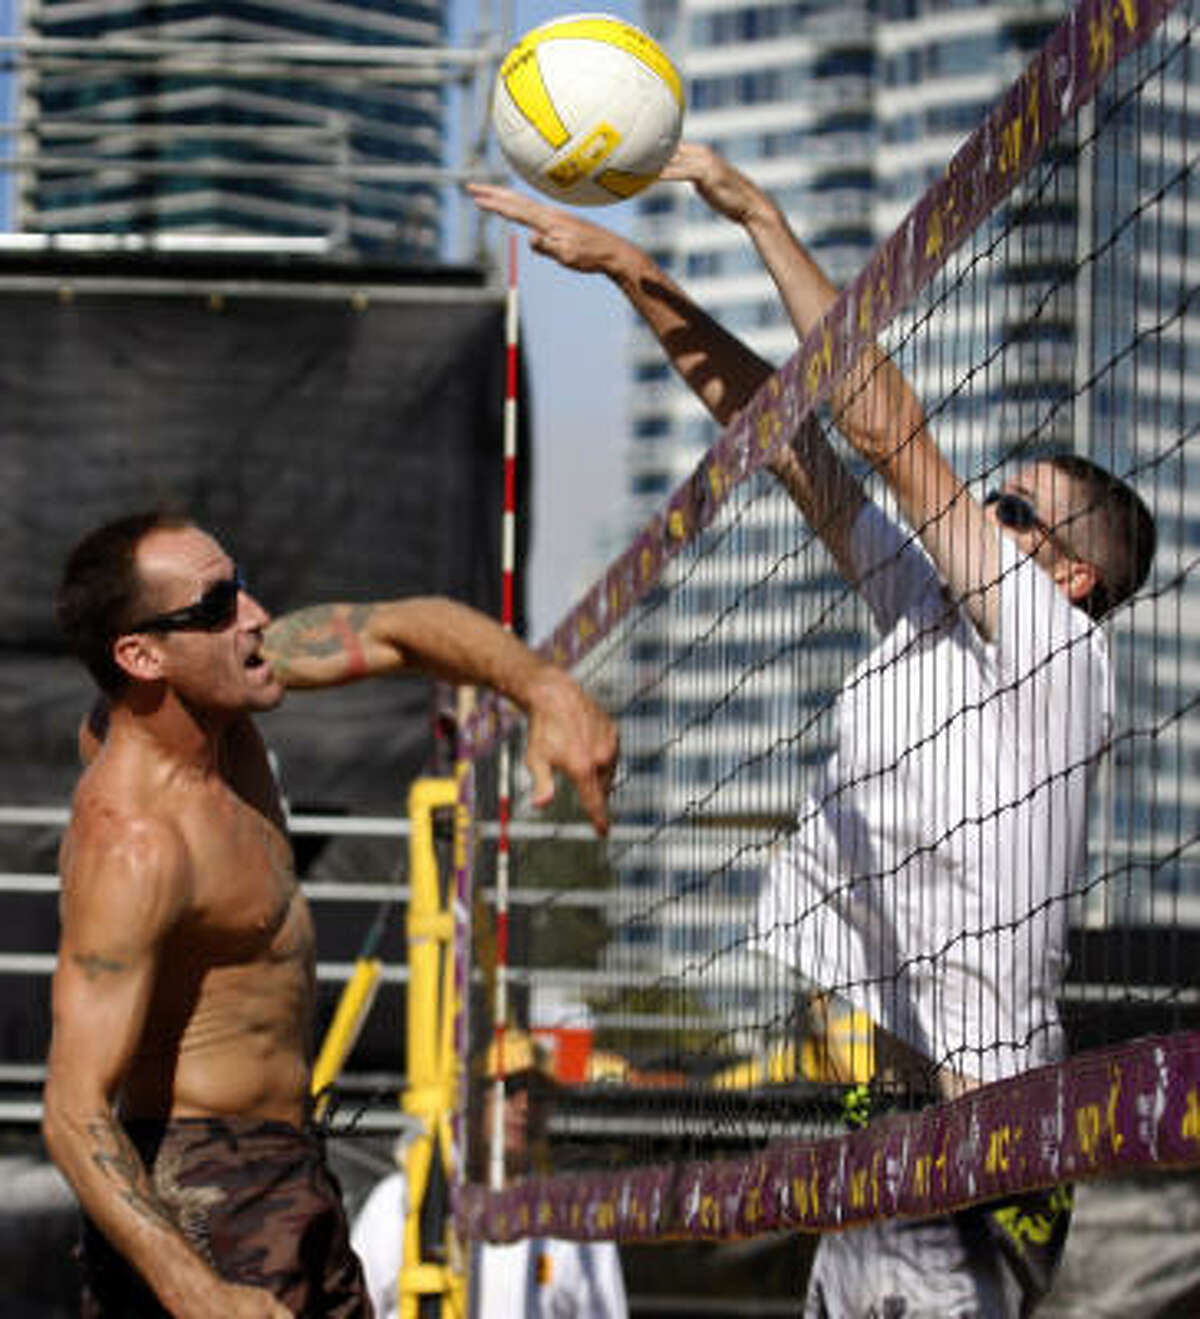 Tim Wooliver (left) slams the ball past Steve Hennings in the first round of the AVPNext Championship Cup.